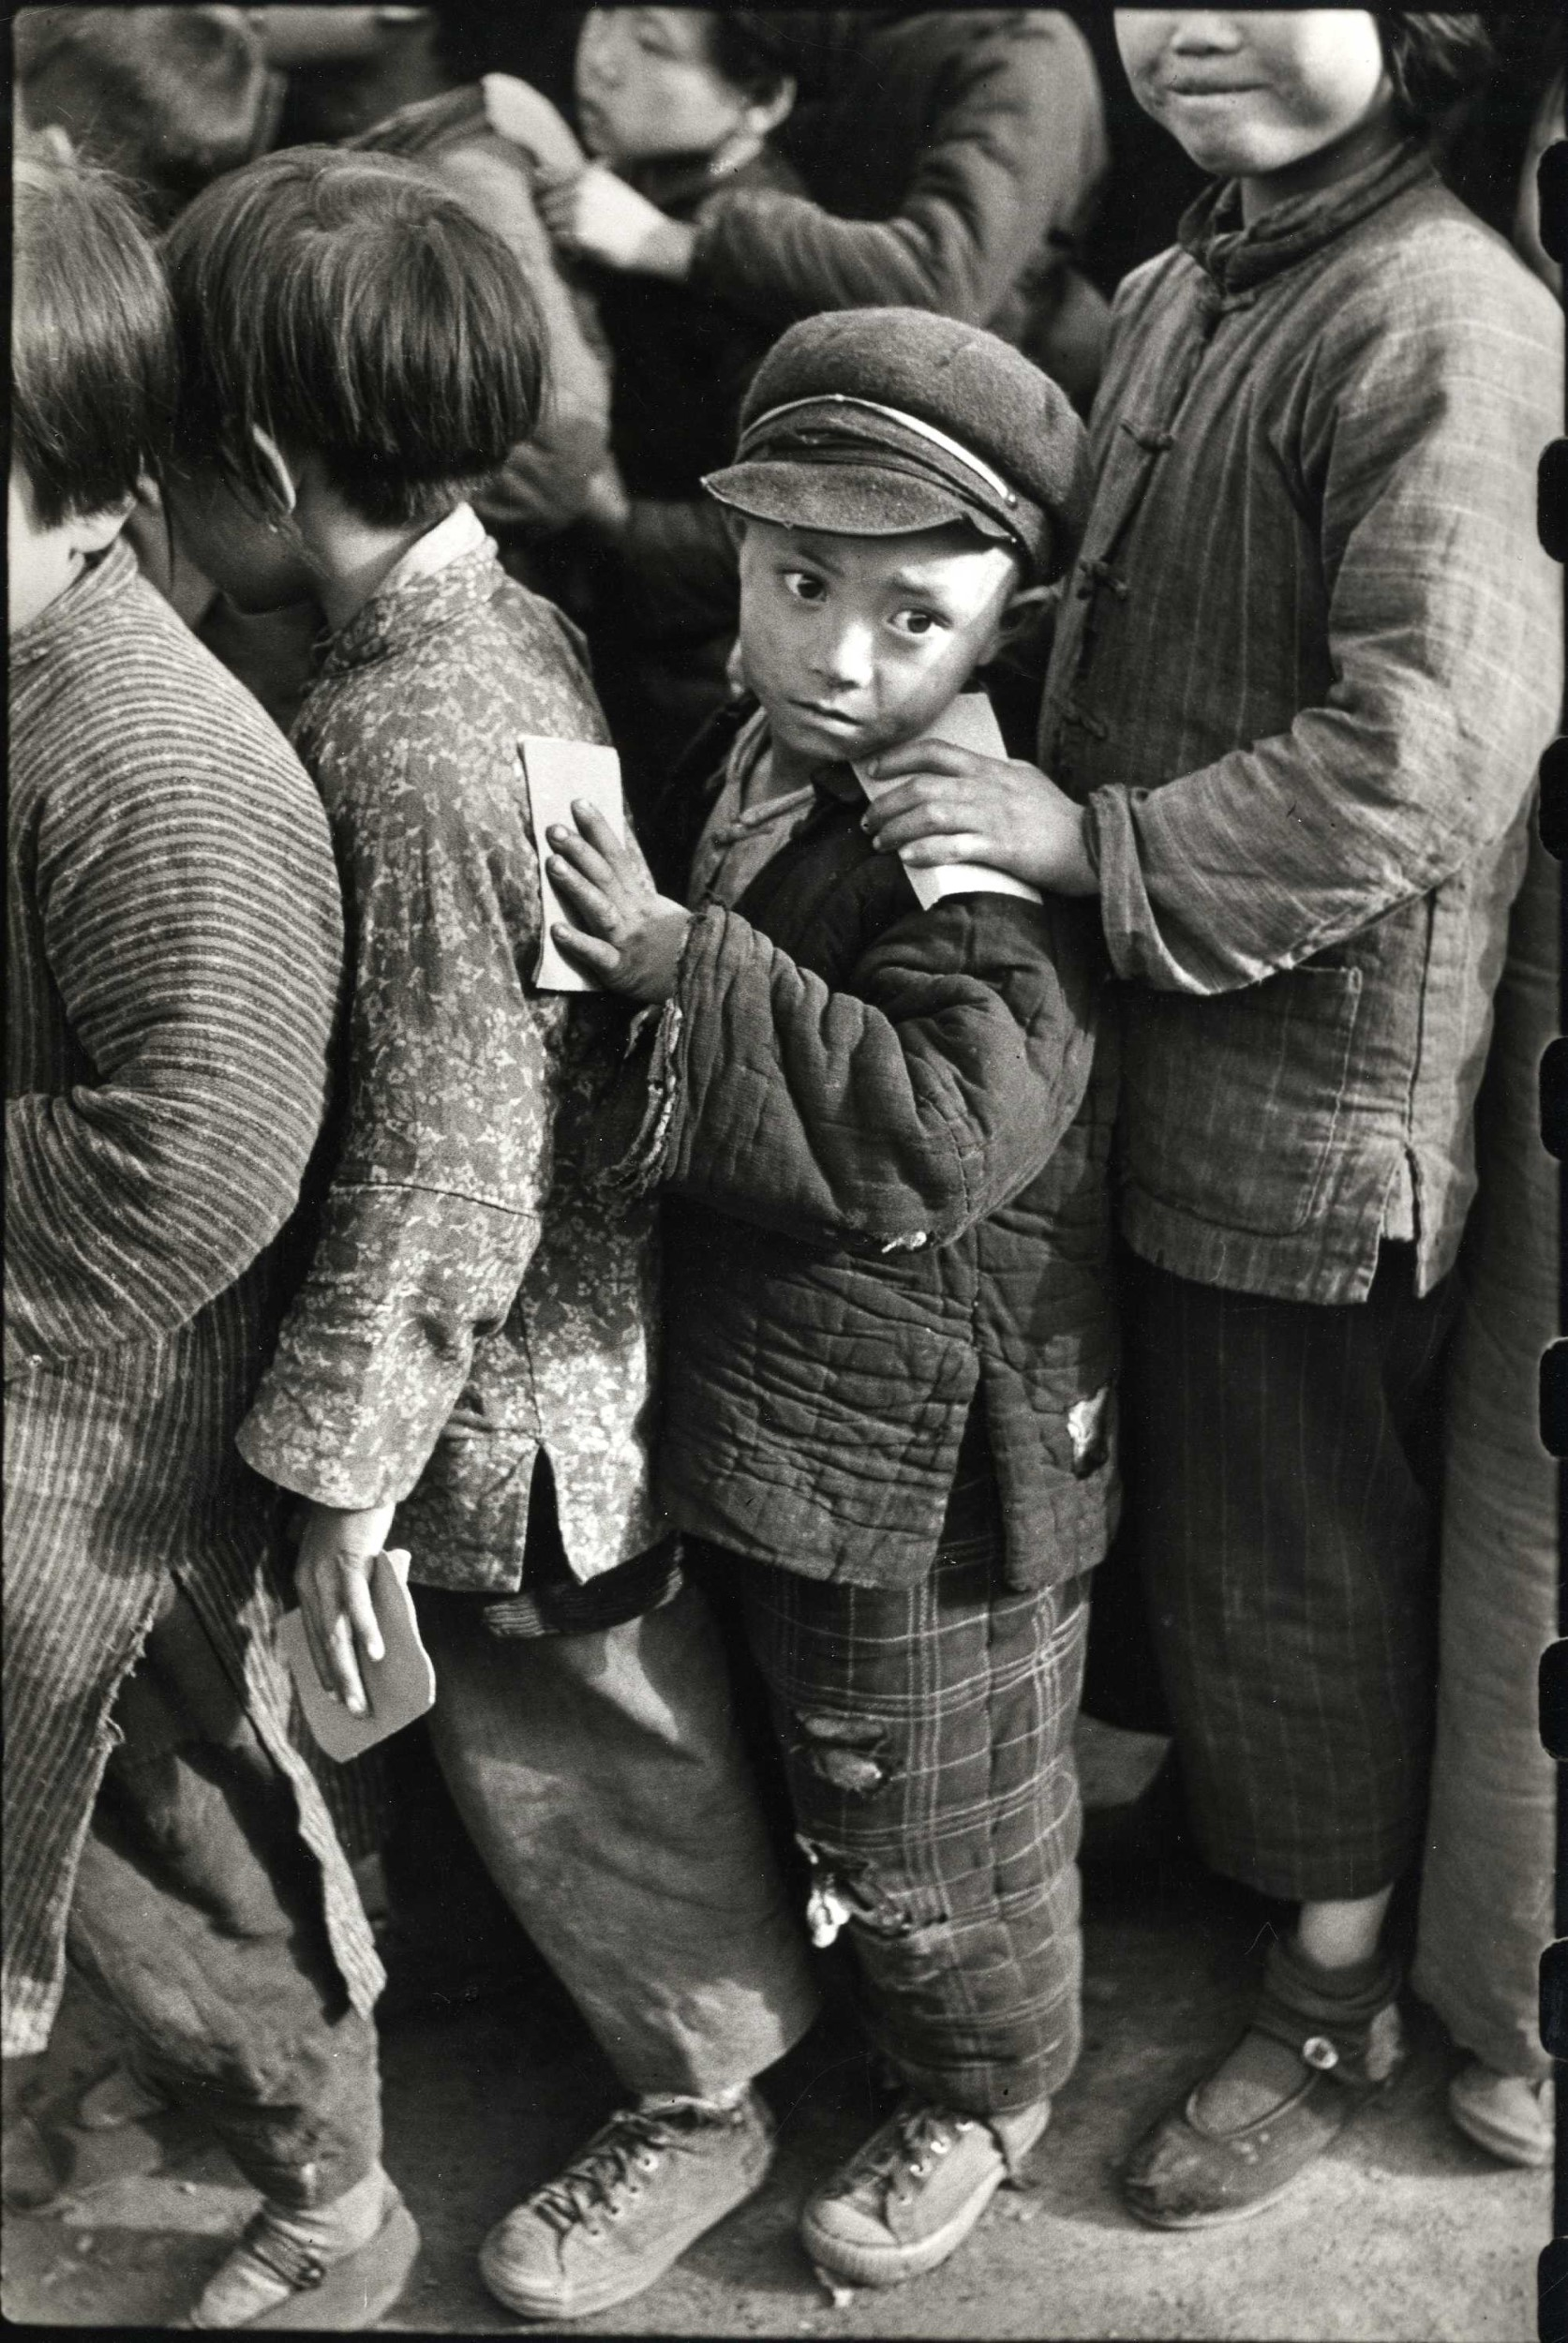 �Les petits professeurs� lining up for rice, China, 1948-49